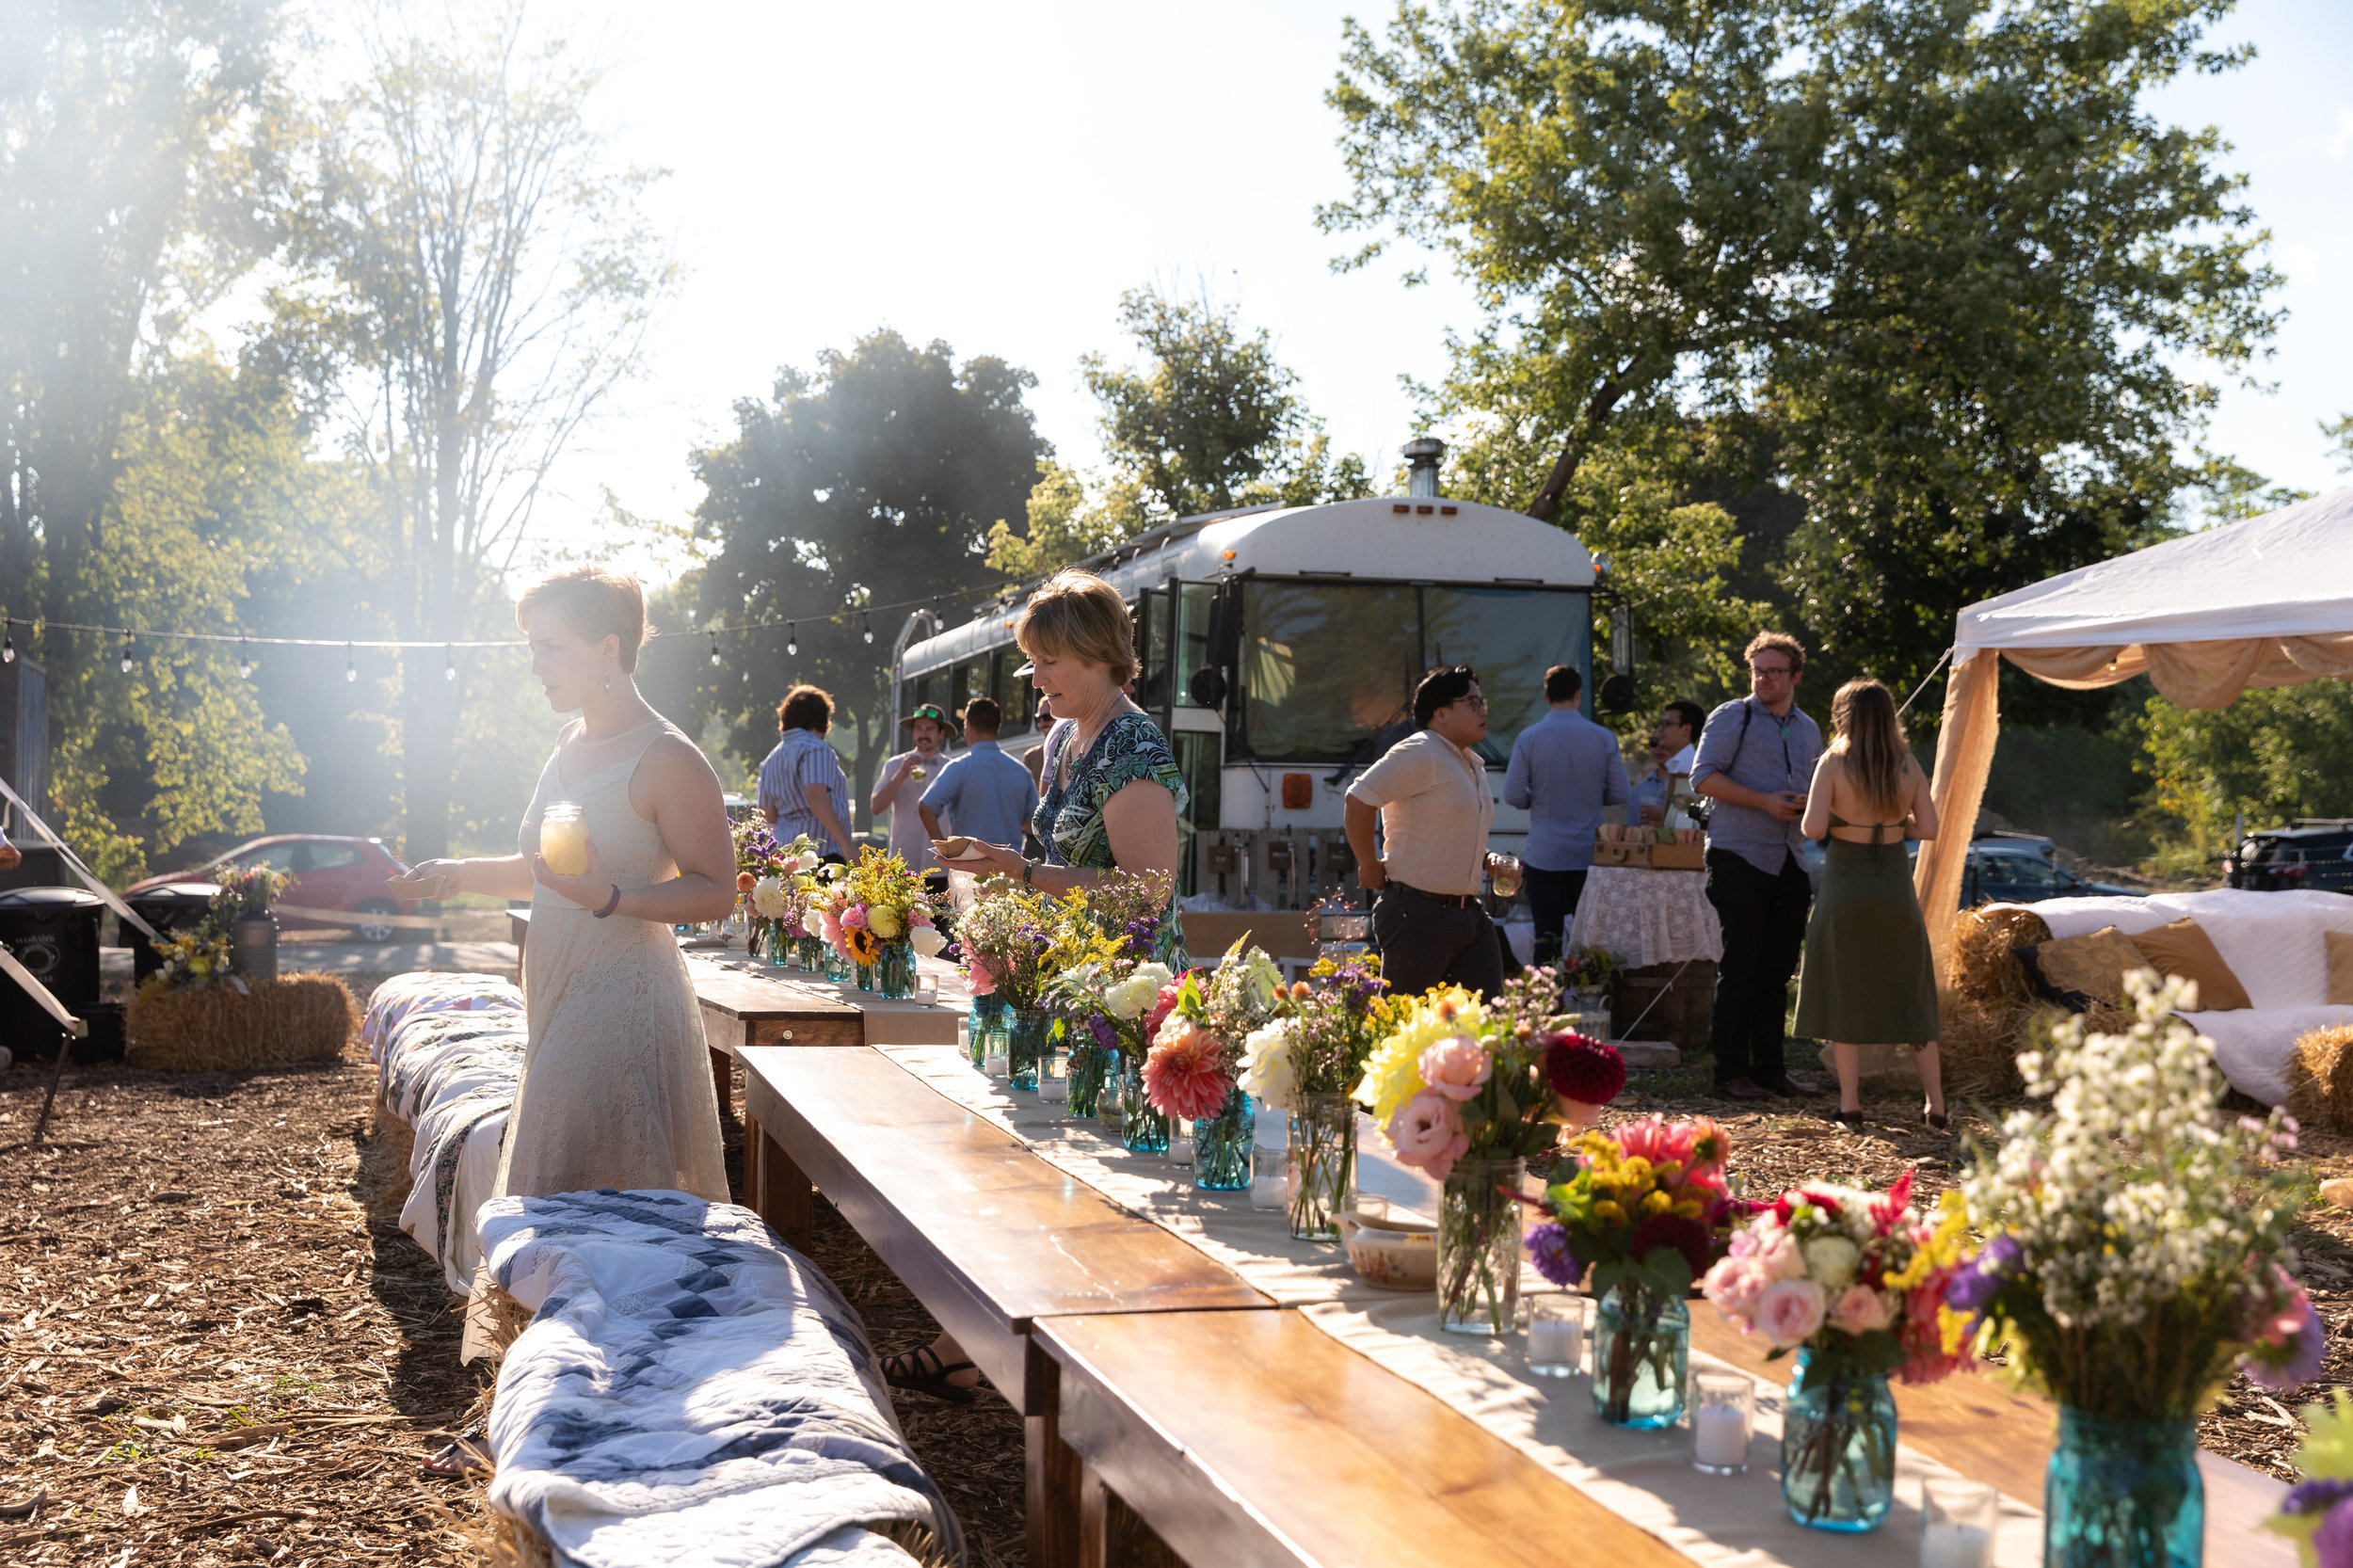 Corporate and Fundraising Events - Host your next summer event at a beautiful outdoor spaceSend an email to fisheyefarms@gmail.com for more info